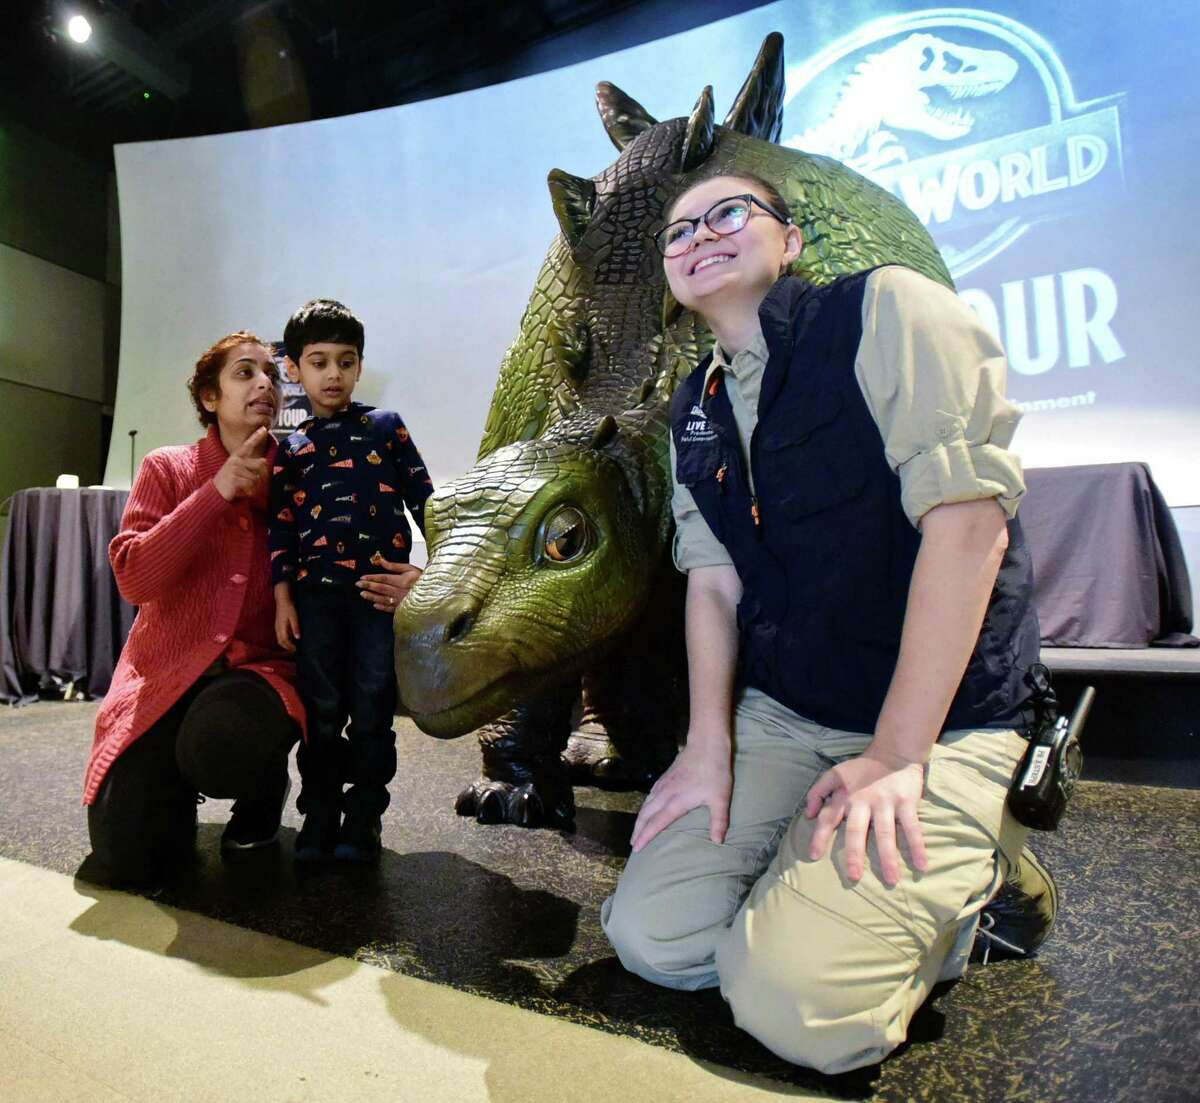 Steph Warrington of Feld Entertainment, right, poses with Anandi Patel of Norwalk and her son, Samanth Patel, 4, as Feld presents Jurassic World Live Tour event featuring Olive the animatronic baby Stegosaurus Friday, February 14, 2020, at Stepping Stones Museum for Children in Norwalk, Conn.